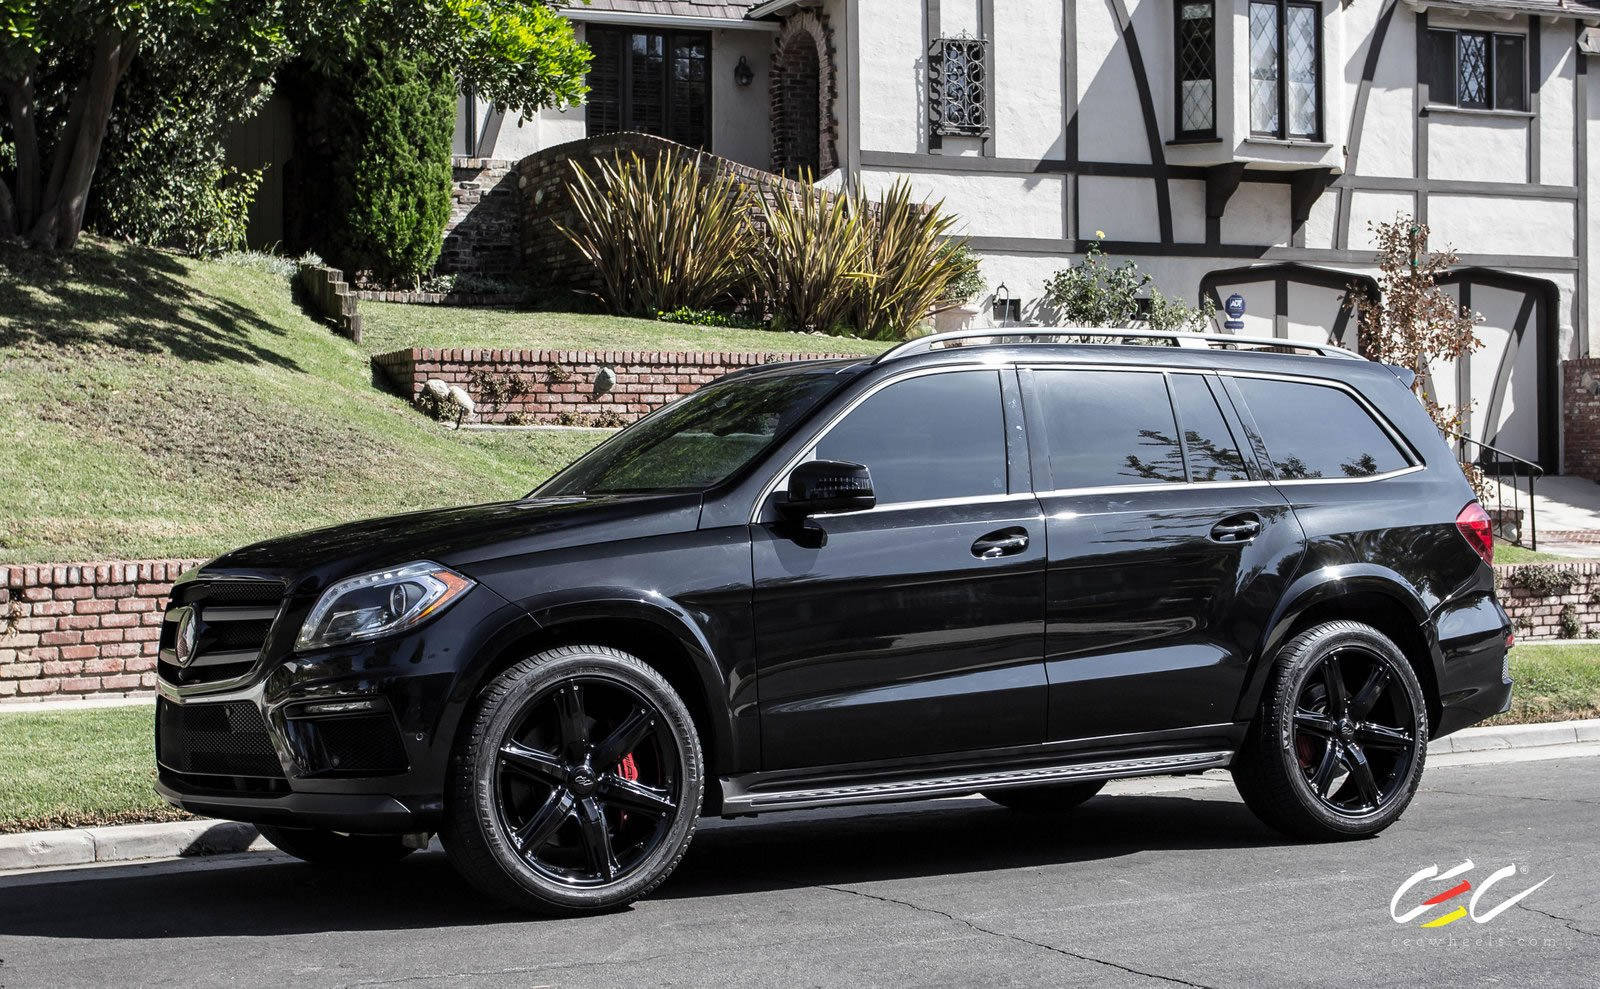 2015 cec wheels tuning cars mercedes benz gl63 amg wallpaper 1600x989 618082 wallpaperup. Black Bedroom Furniture Sets. Home Design Ideas